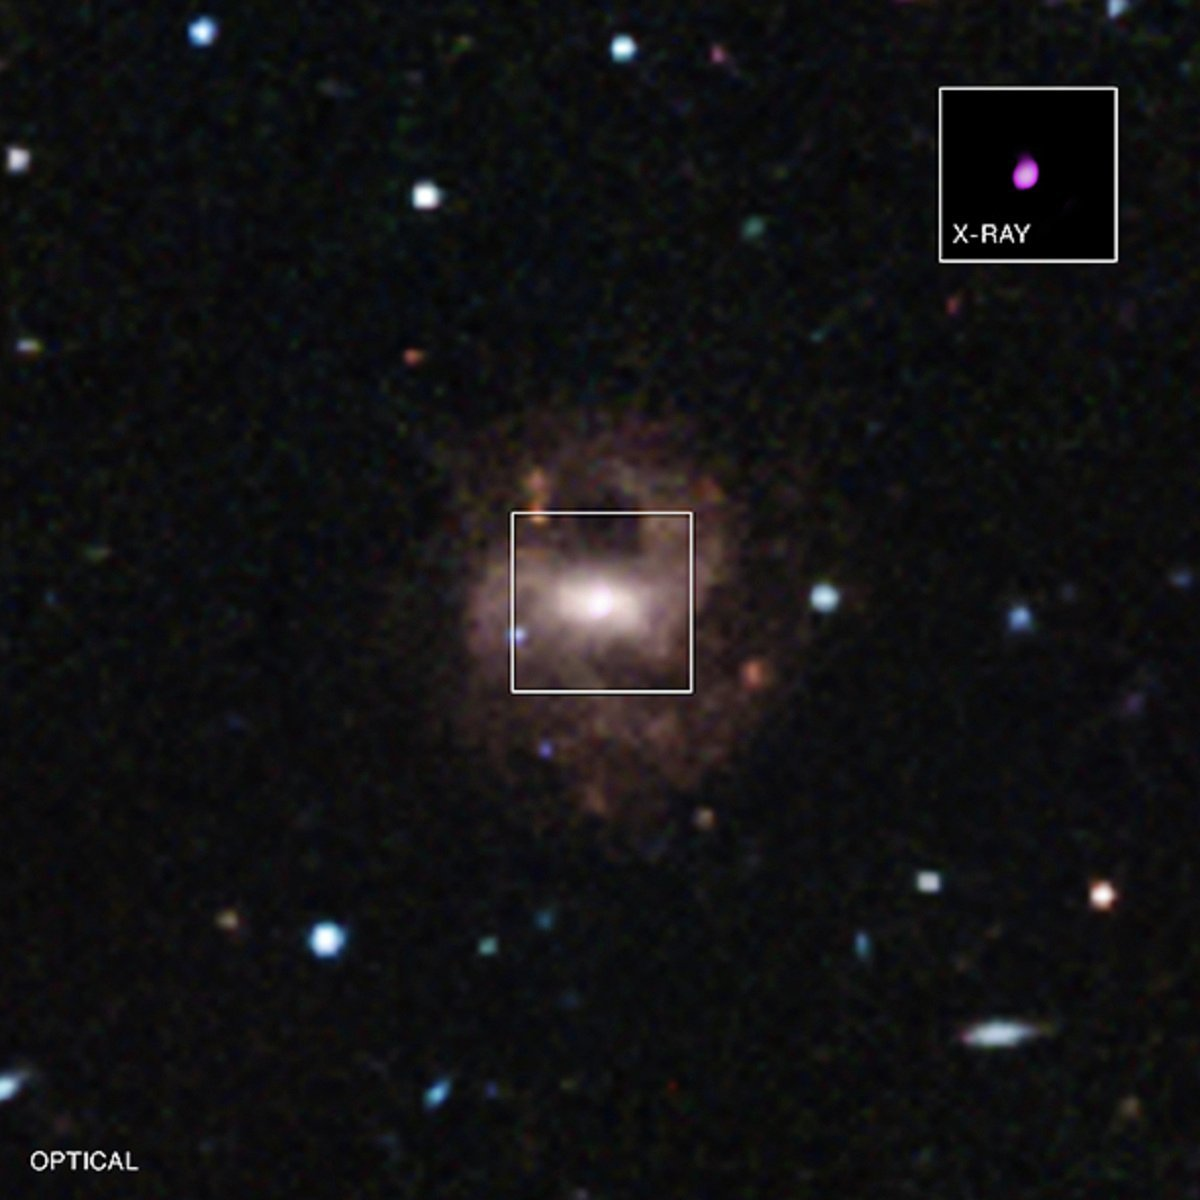 The black hole in RGG 118 is nearly 100 times less massive than the supermassive black hole found in the center of the Milky Way. It's also about 200,000 times less massive than the heaviest black holes found in the centers of other galaxies.